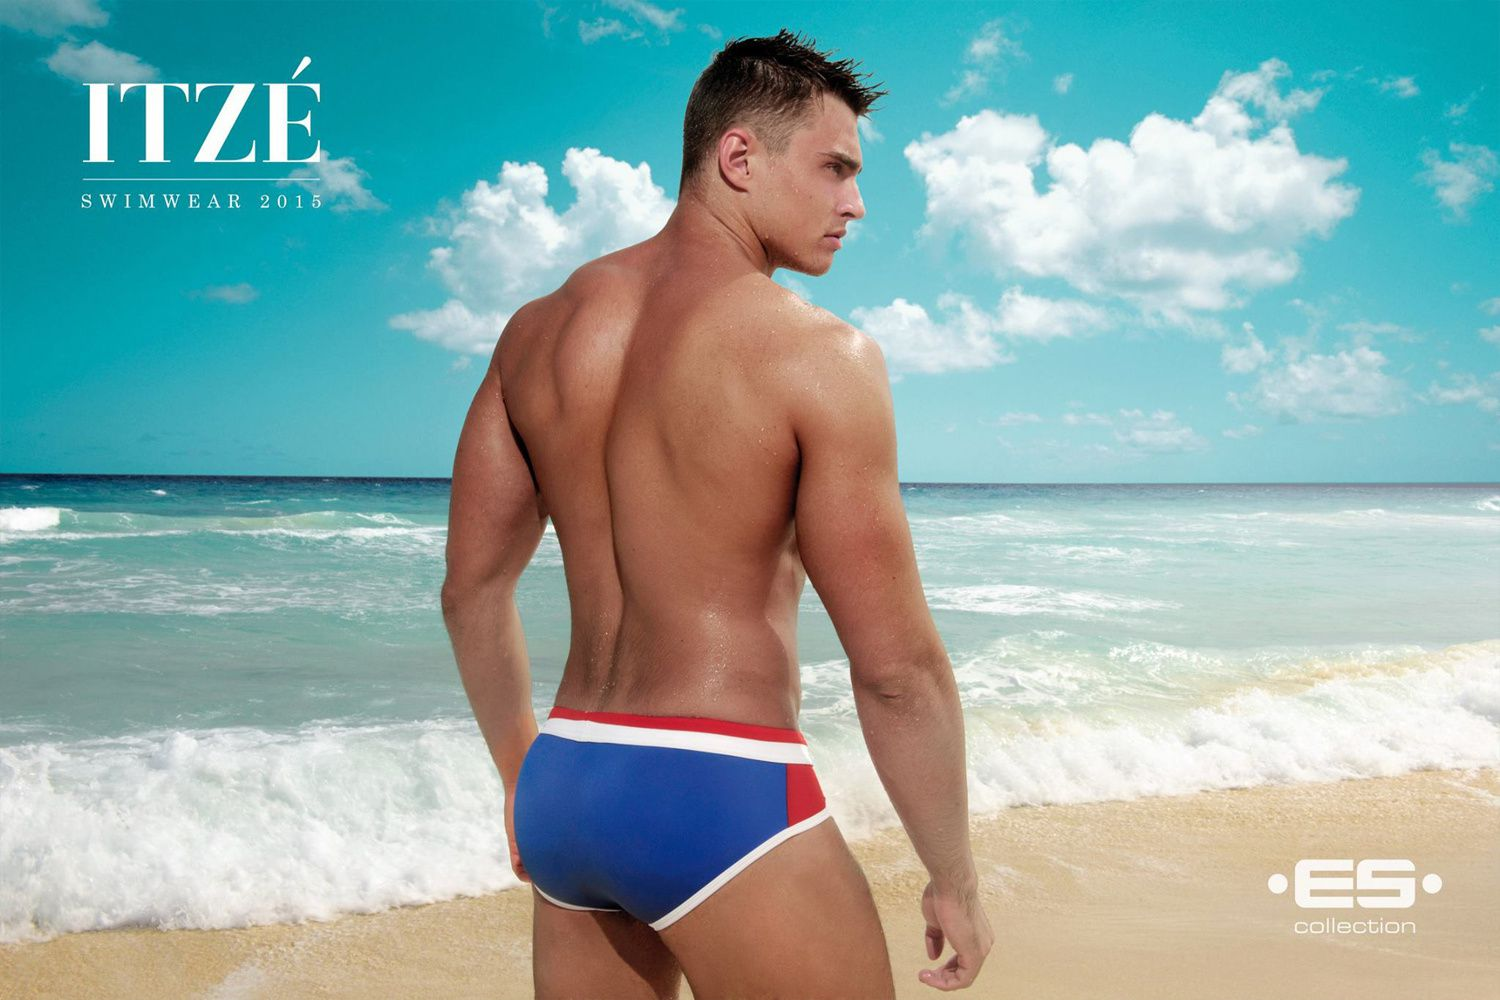 ES Collection : ITZÉ 2015 Swimwear Collection more